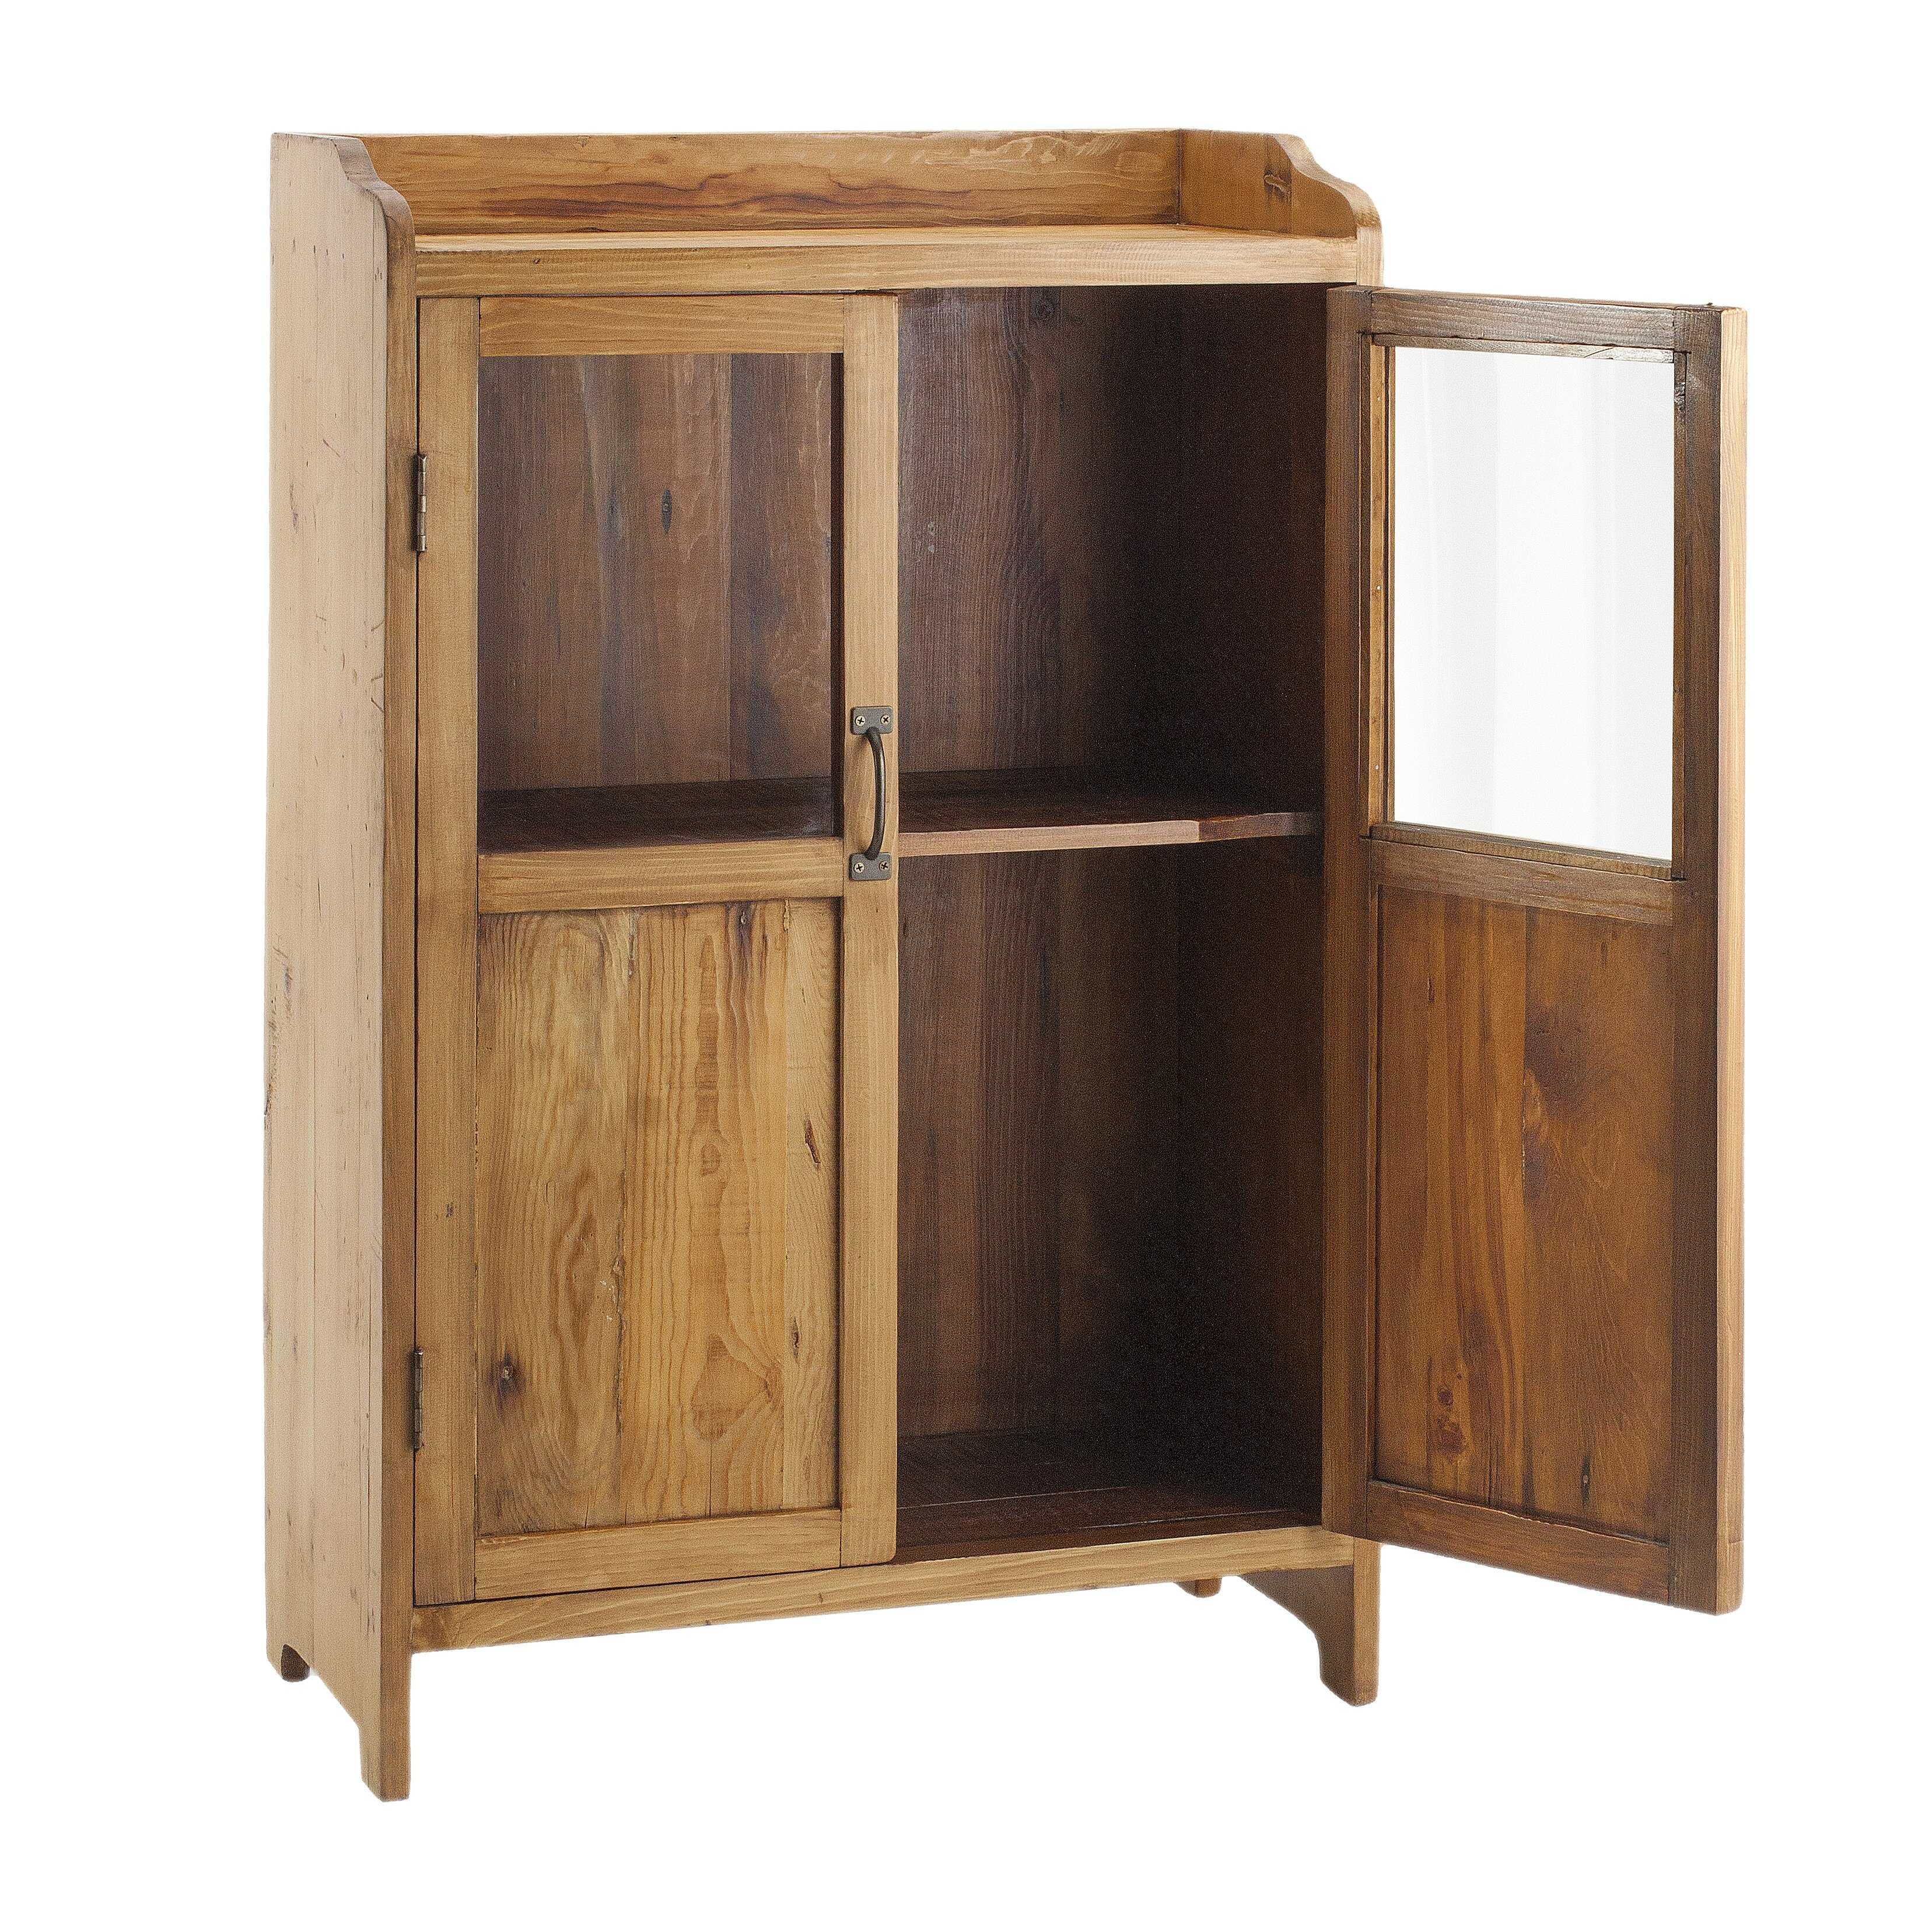 Display Cabinets For Home: Antique Revival PL Home Display Cabinet & Reviews